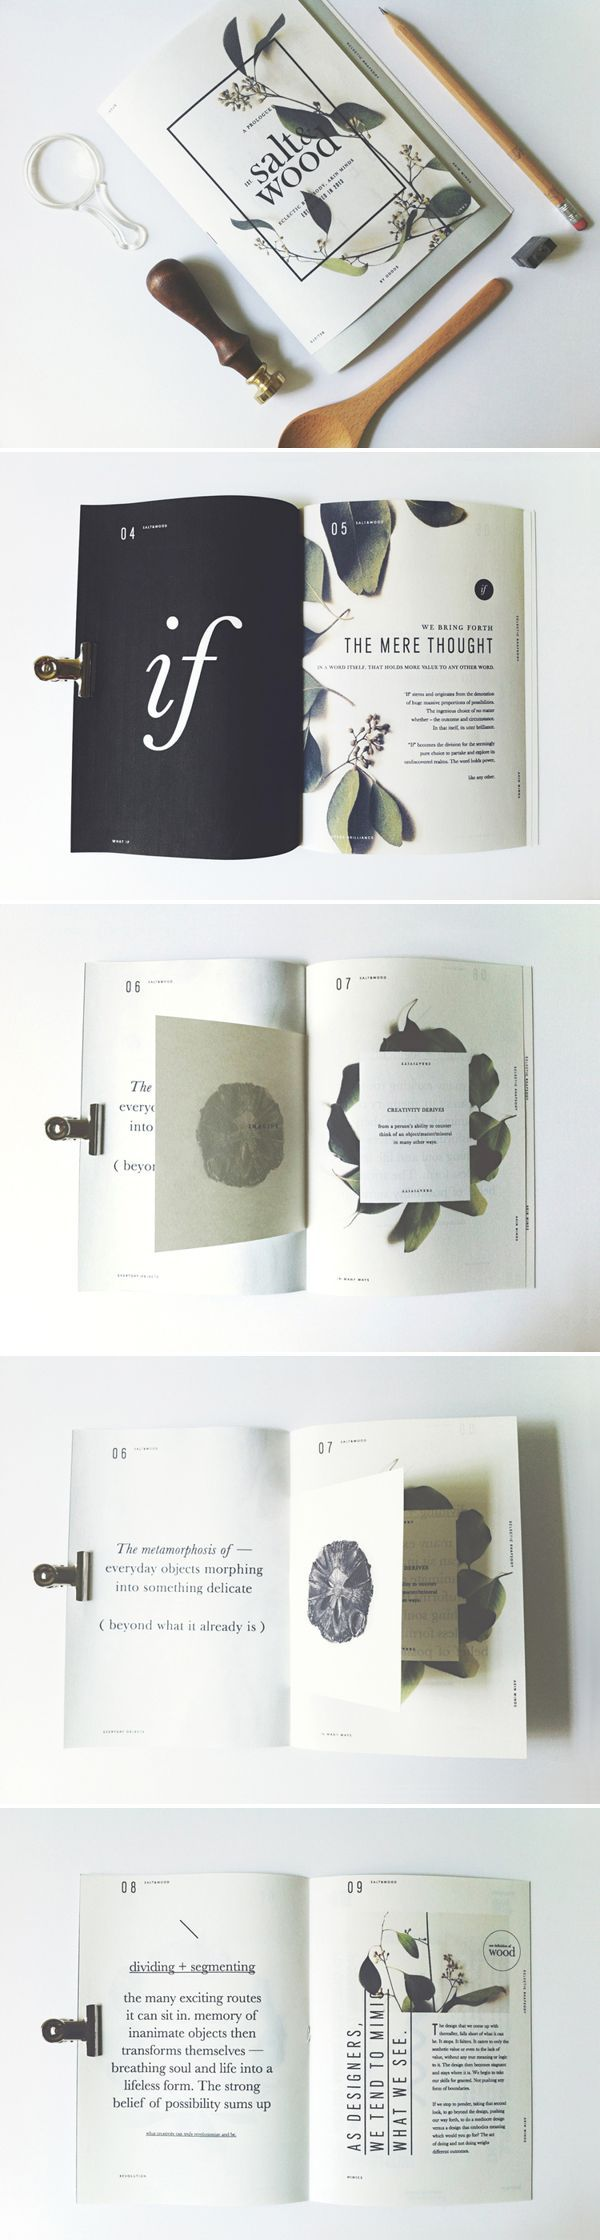 Salt & Wood, Zine. by Oddds , via Behance